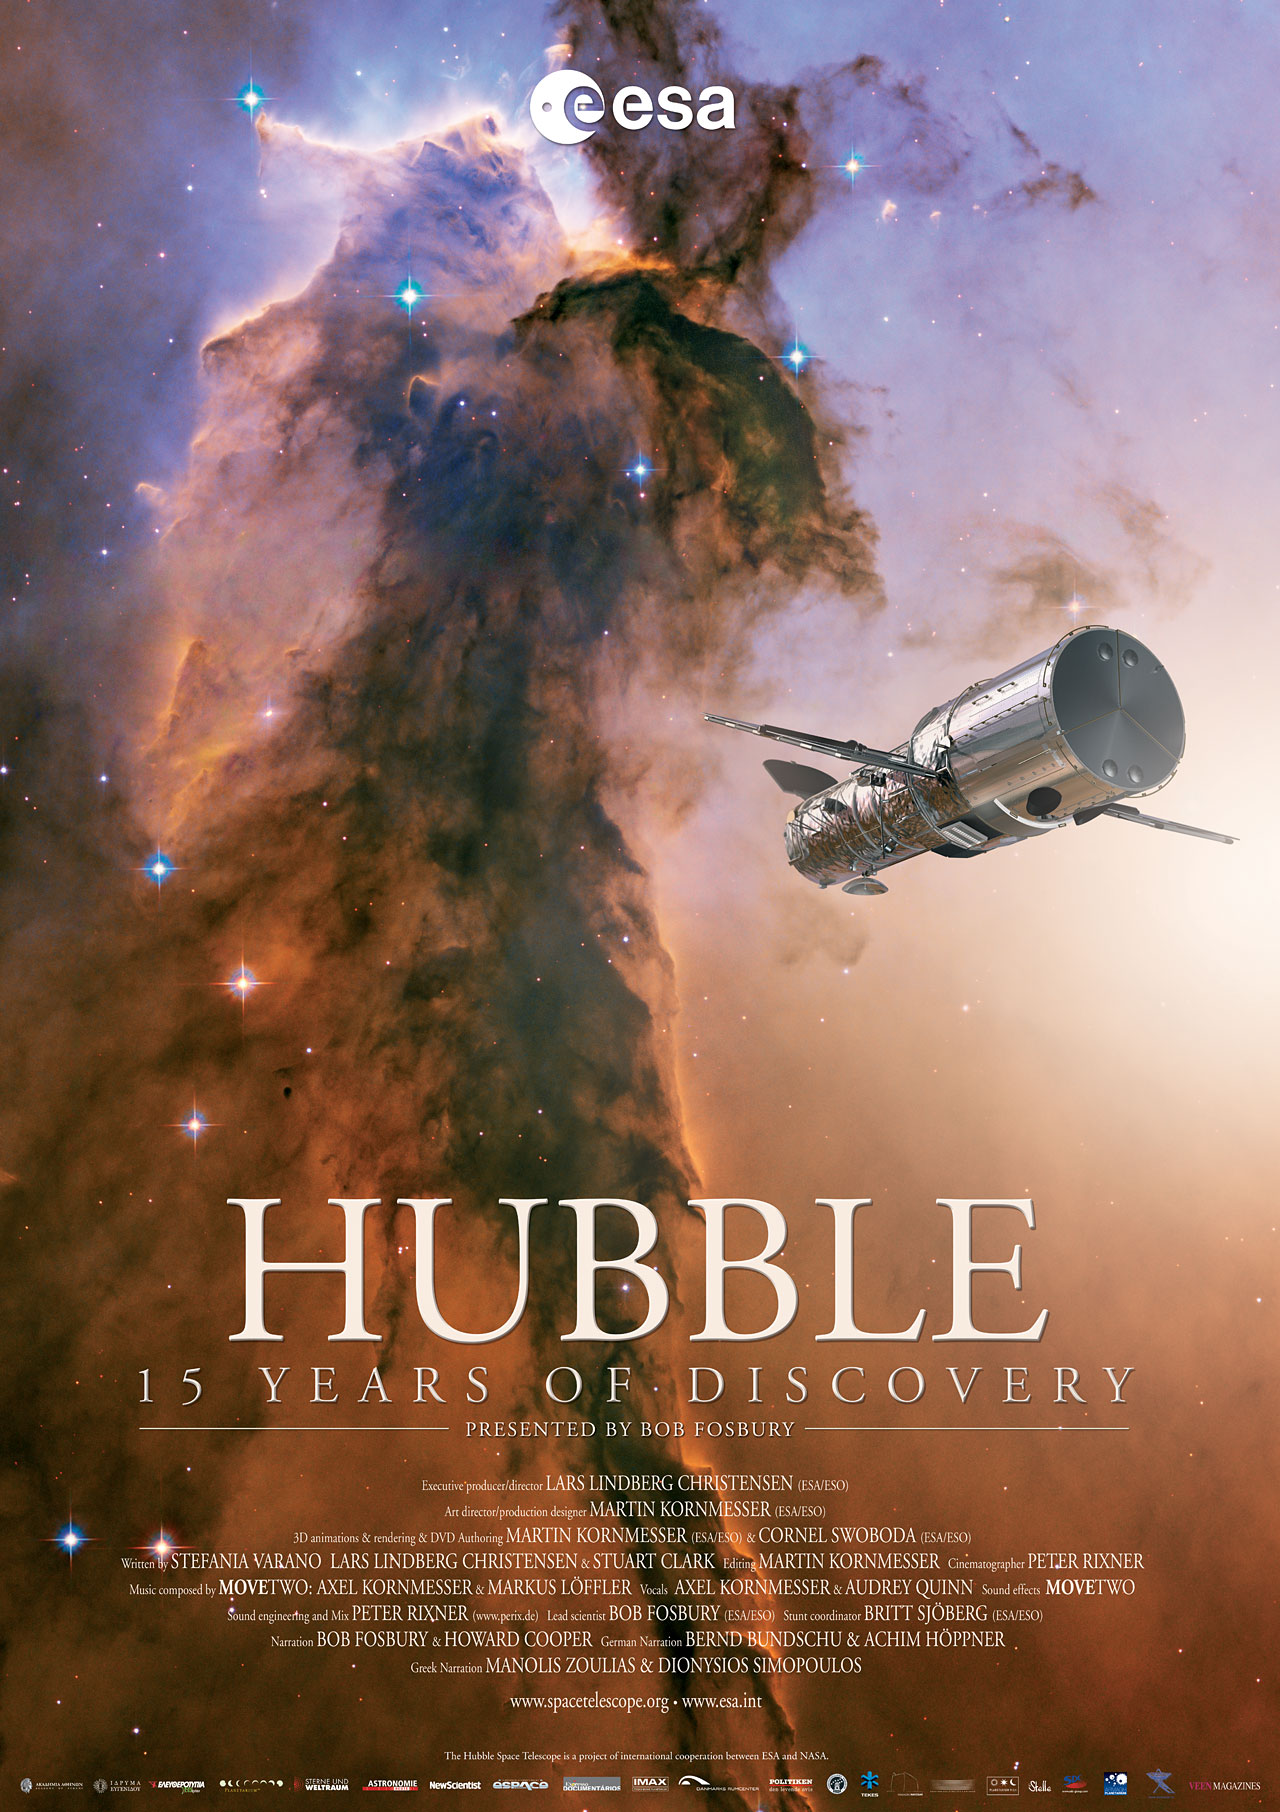 Hubble - 15 Years of Discovery movie poster | ESA/Hubble